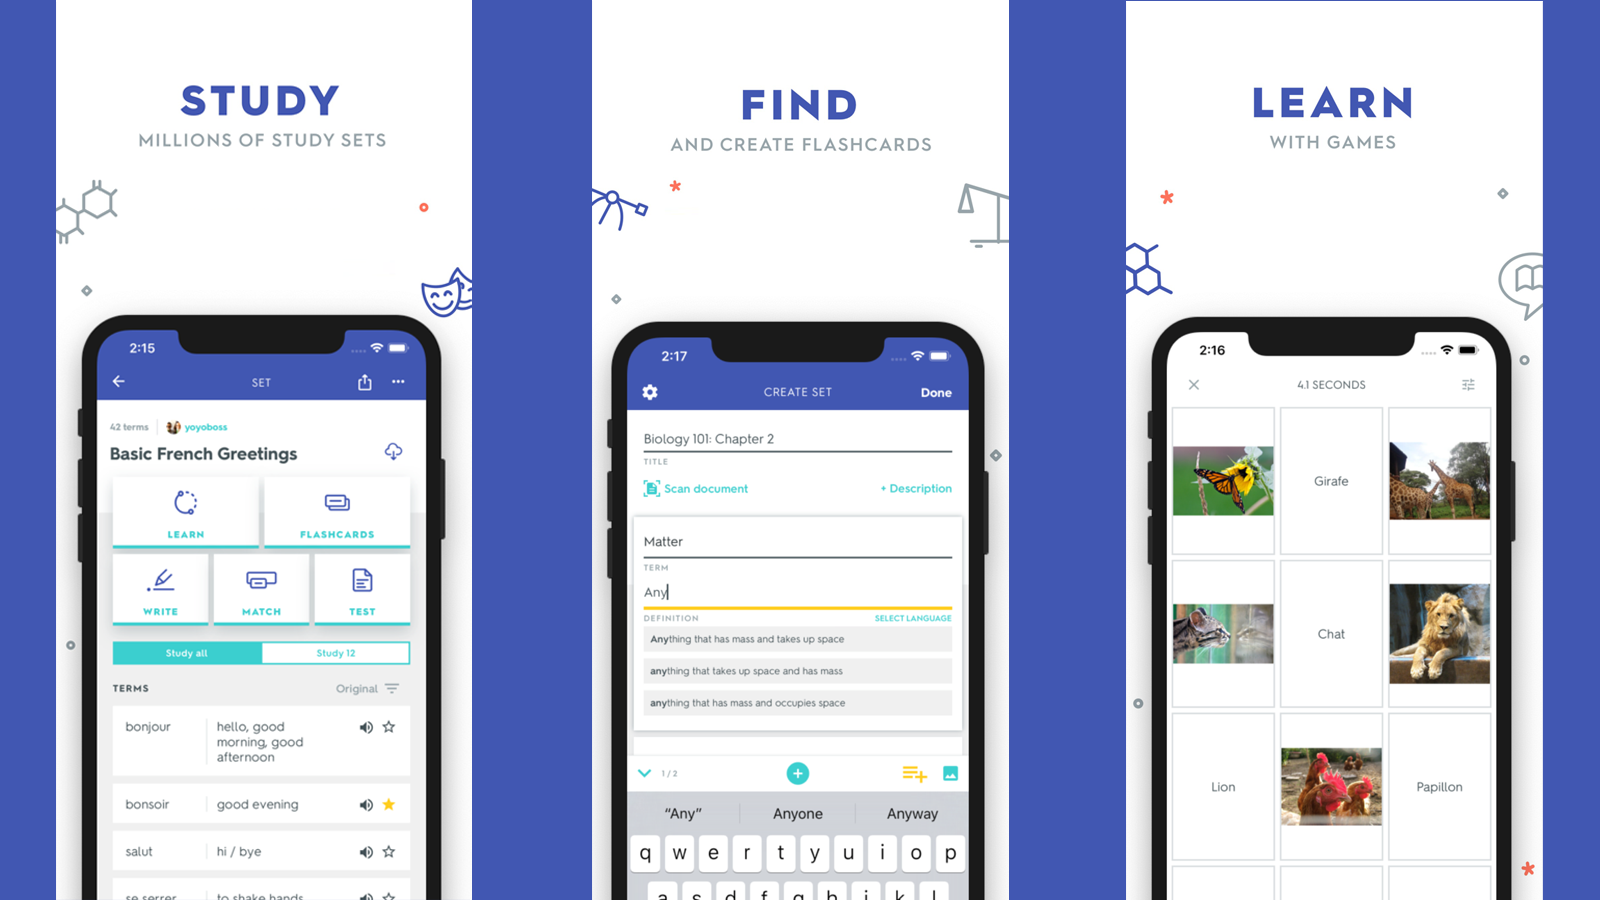 Three pages of the Quizlet app, showing resources for studying, finding, and learning content